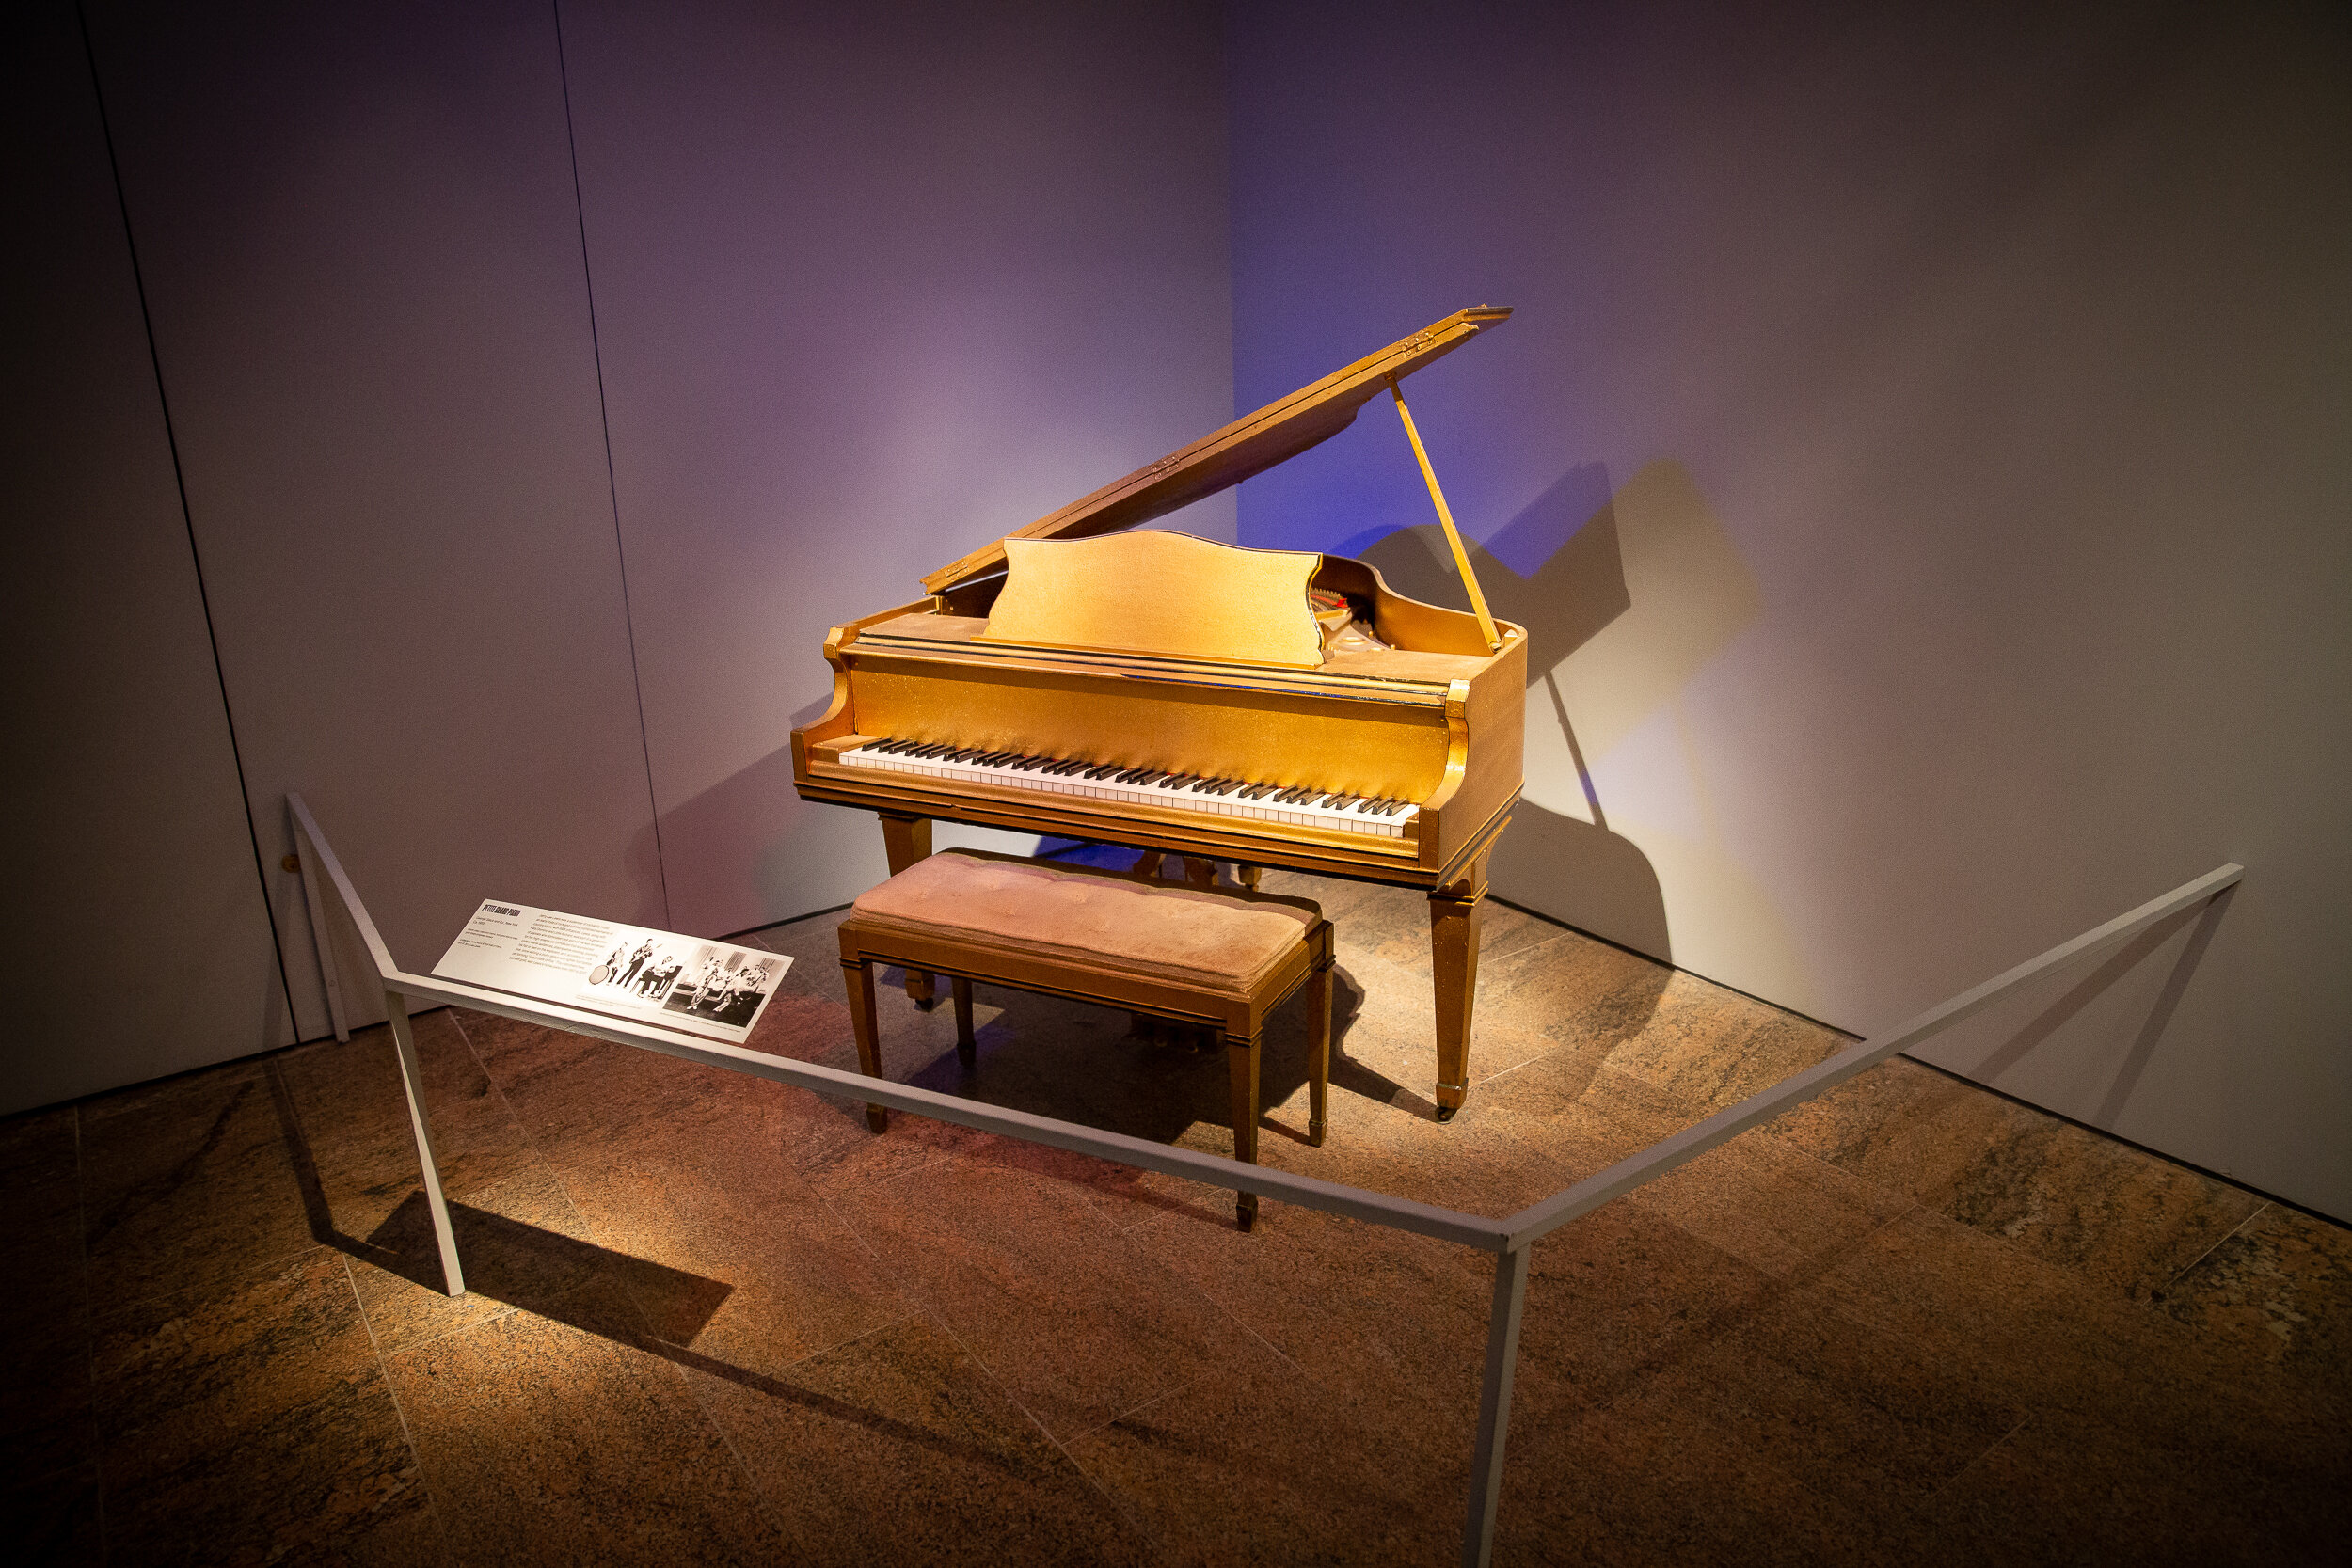 Jerry Lee Lewis' piano at The Metropolitan Museum of Art